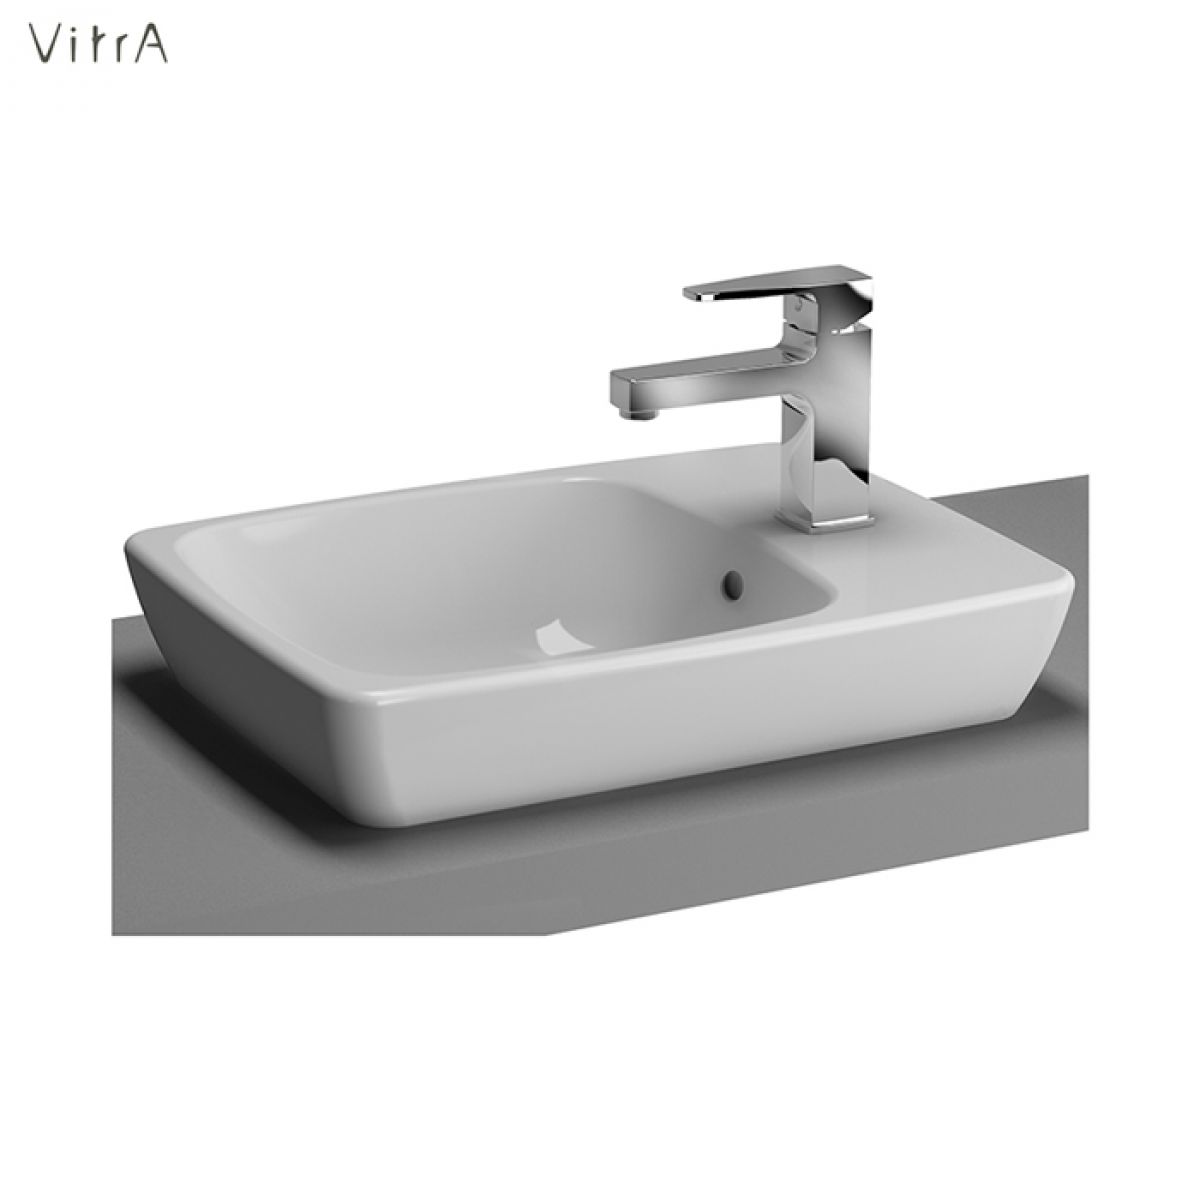 vitra m line compact countertop basin uk bathrooms. Black Bedroom Furniture Sets. Home Design Ideas